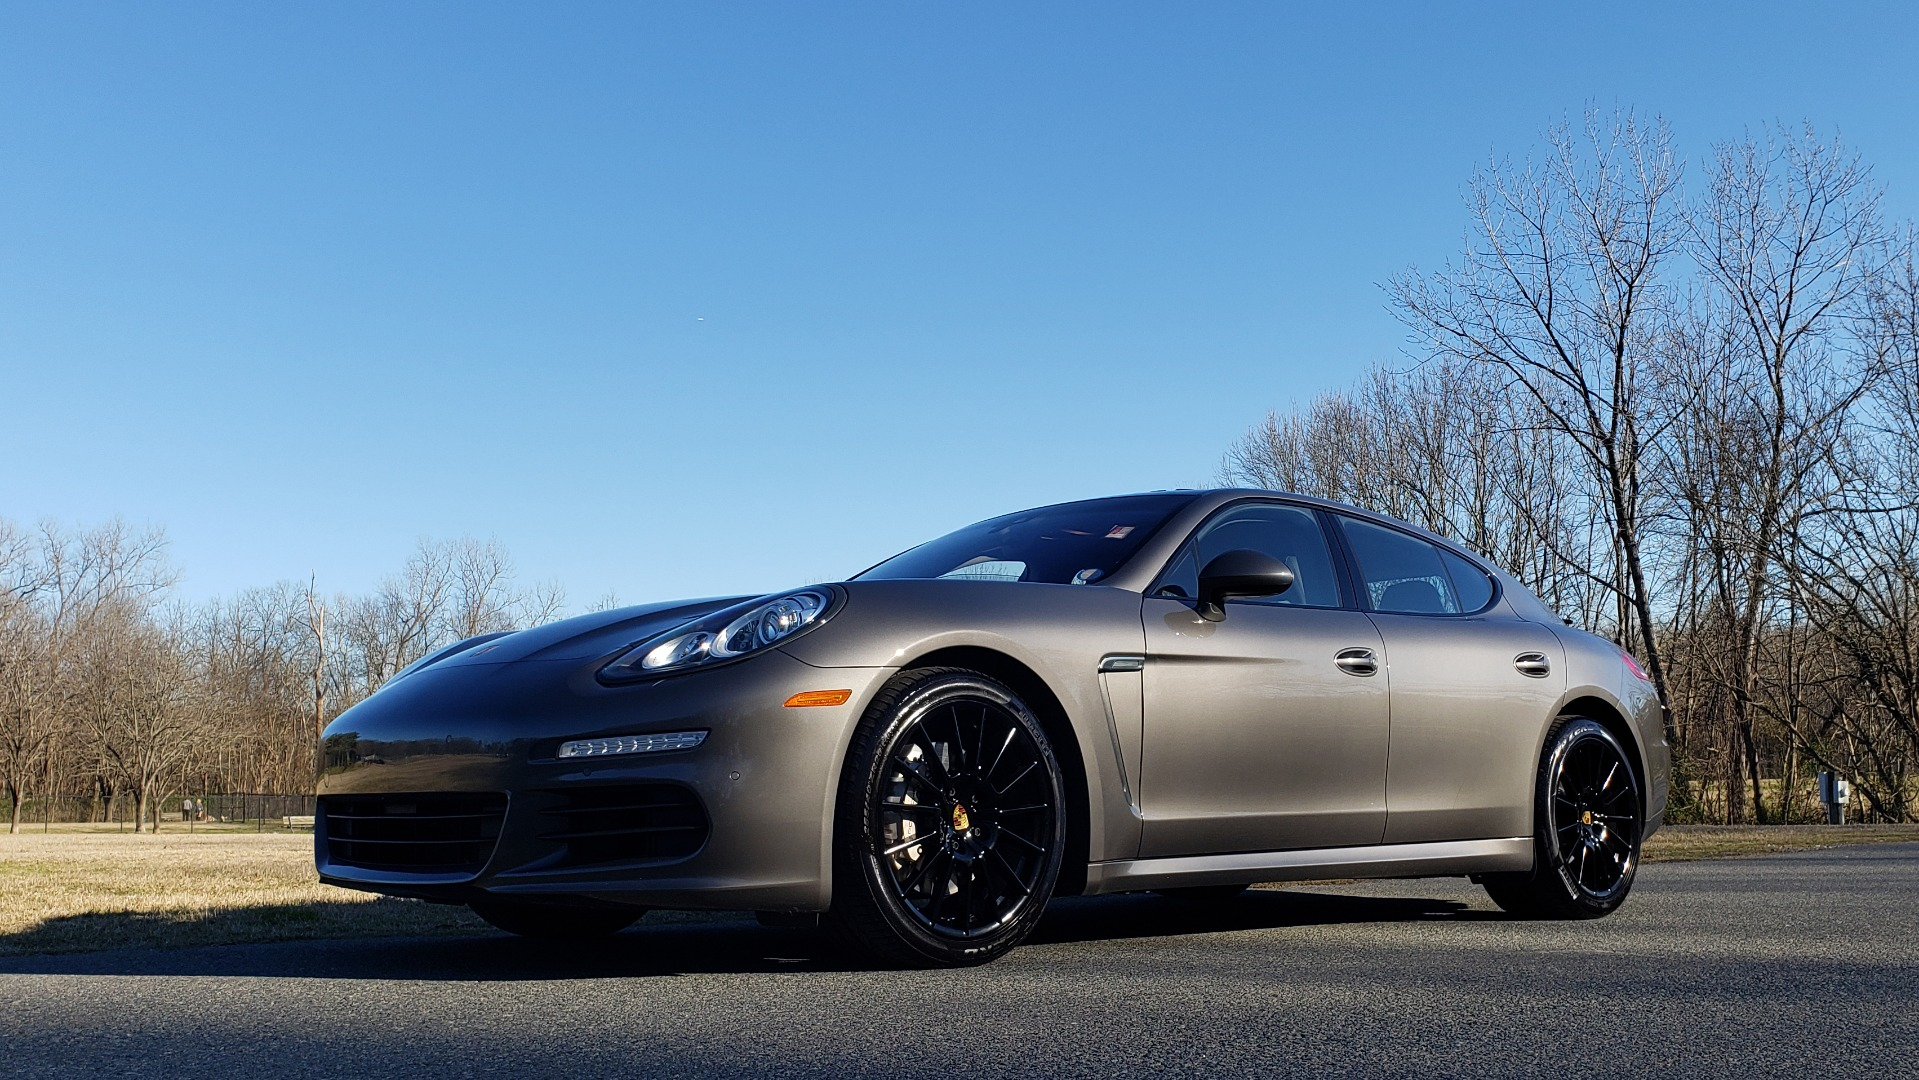 Used 2016 Porsche PANAMERA S / TURBO V6 / PDK / NAV / BOSE / SNRF / LDW / REARVIEW for sale Sold at Formula Imports in Charlotte NC 28227 31